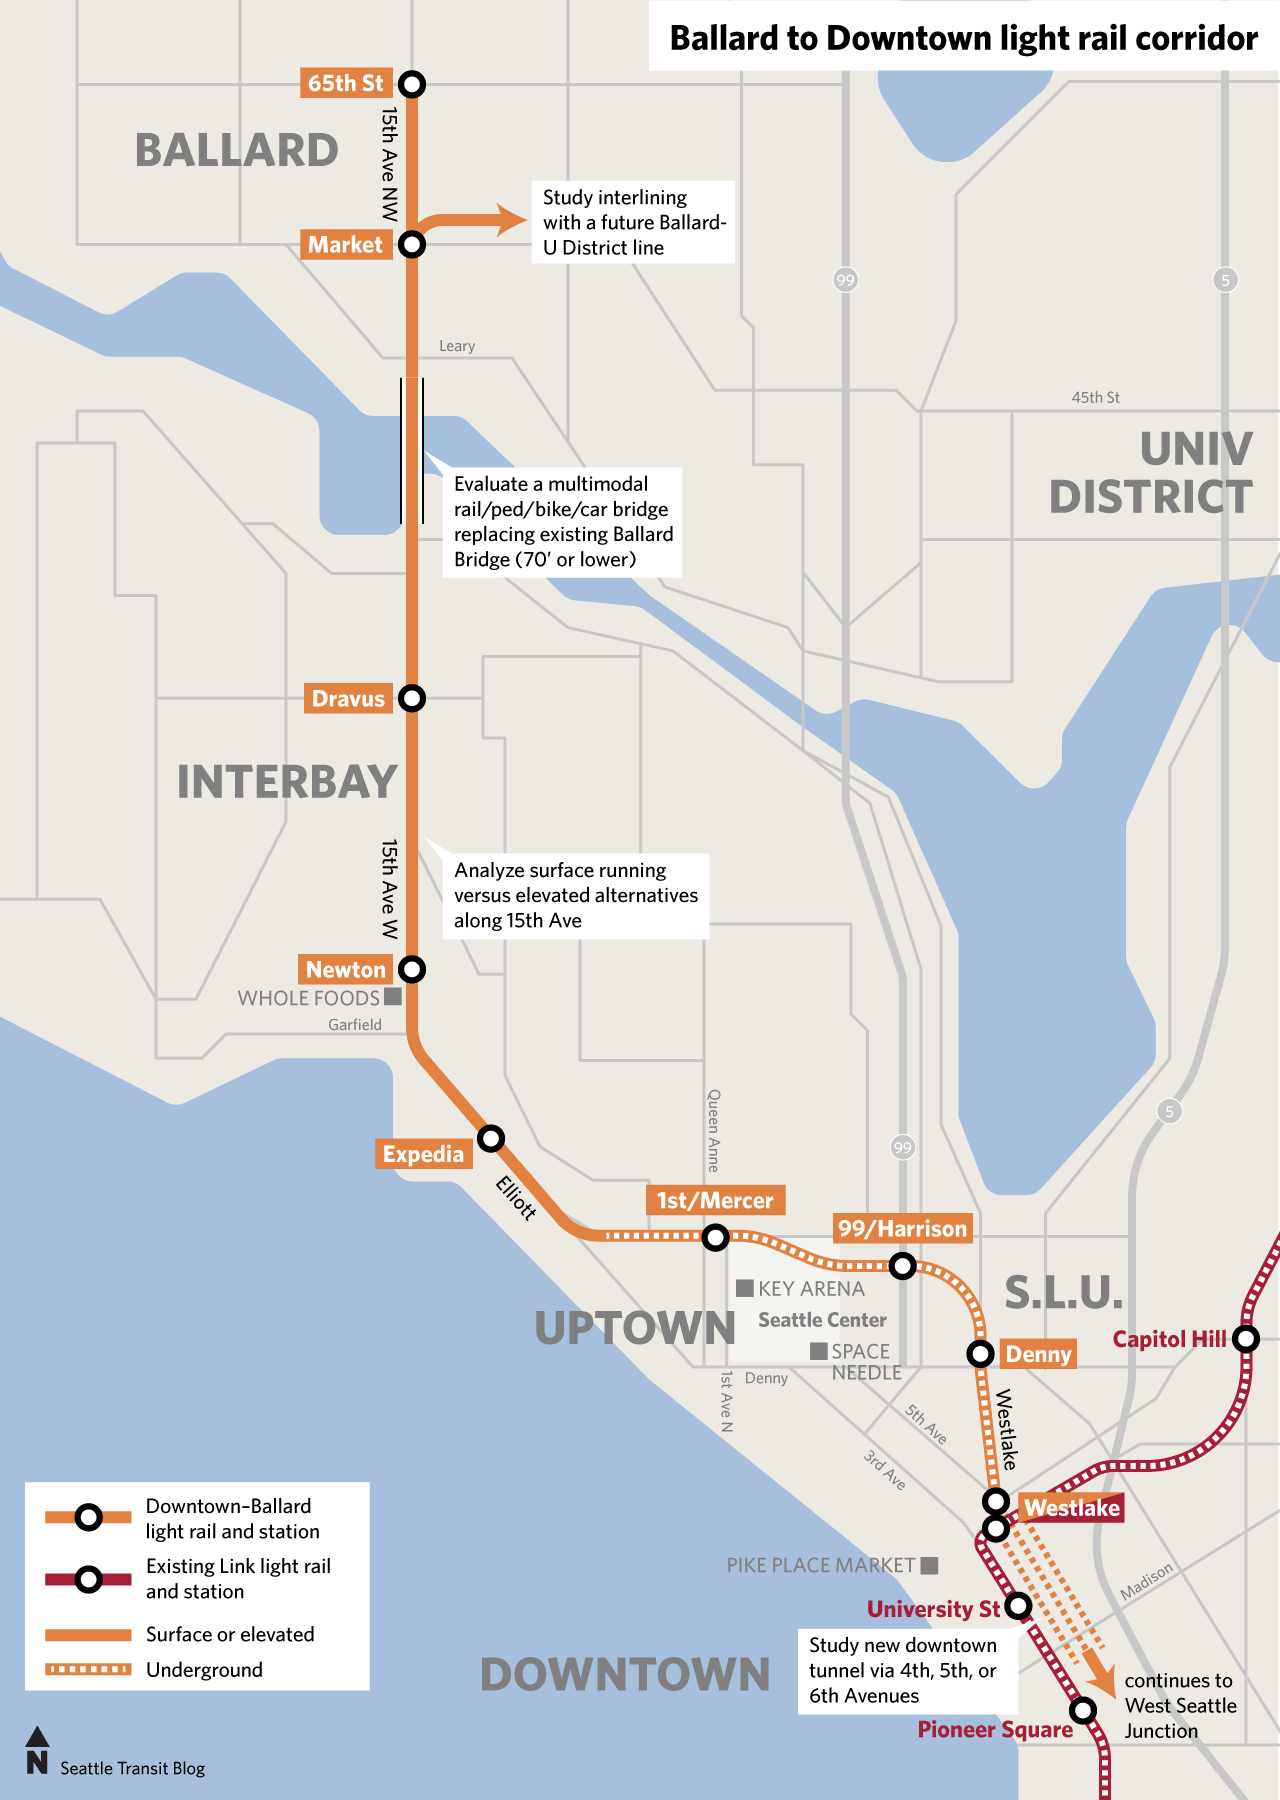 Heres a visualization of the Ballard rail route from one of the